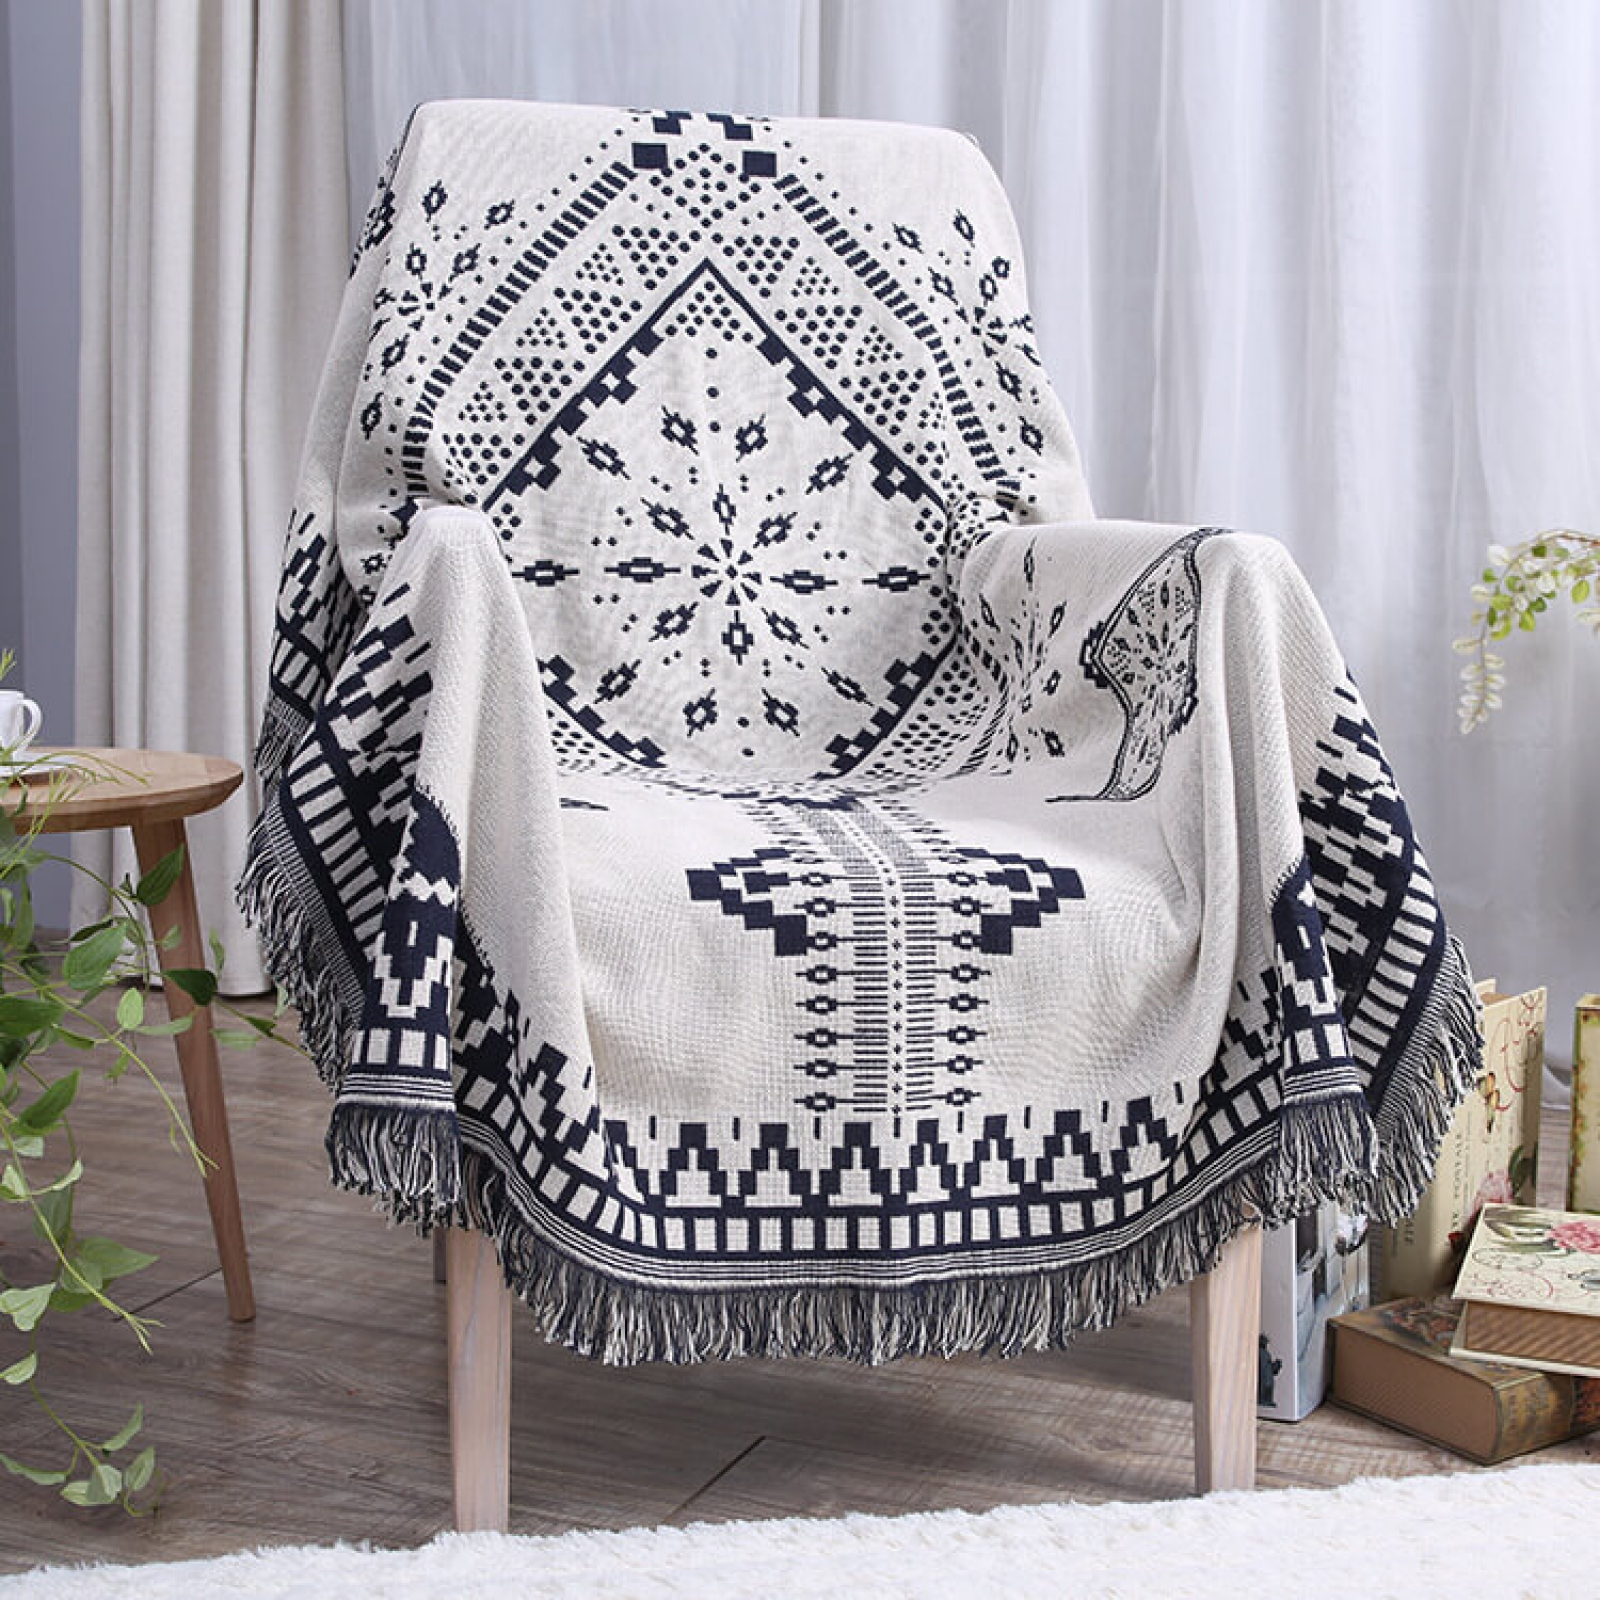 Decorative Sofa Throws Blankets Throw Blanket Western Southwest Motif Tribal Pattern Decorative